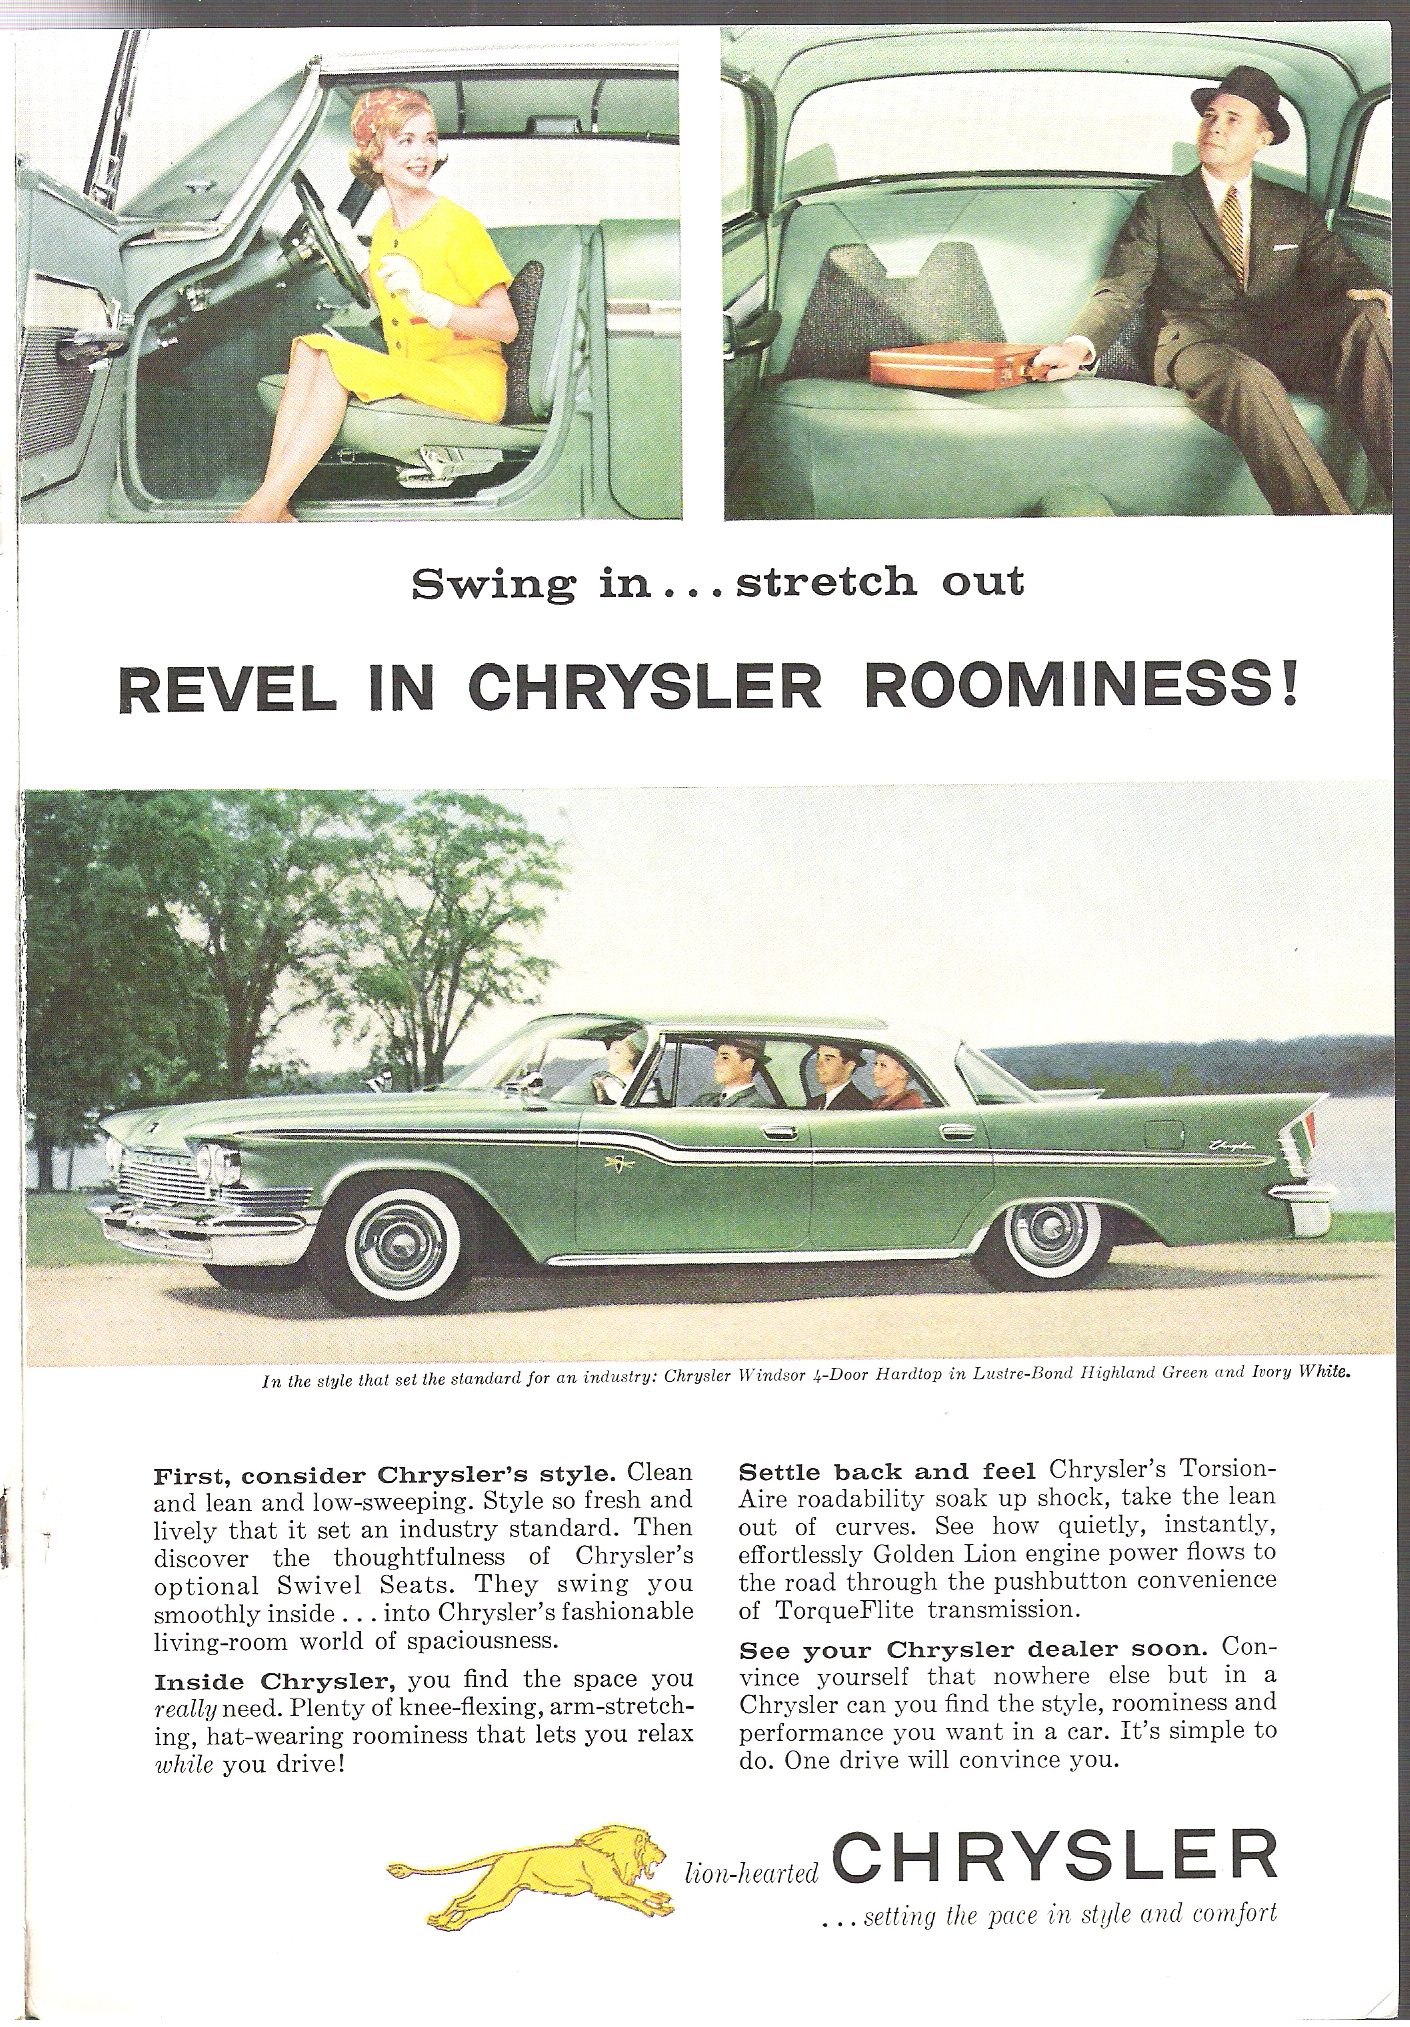 View photo of 1960 Chrysler